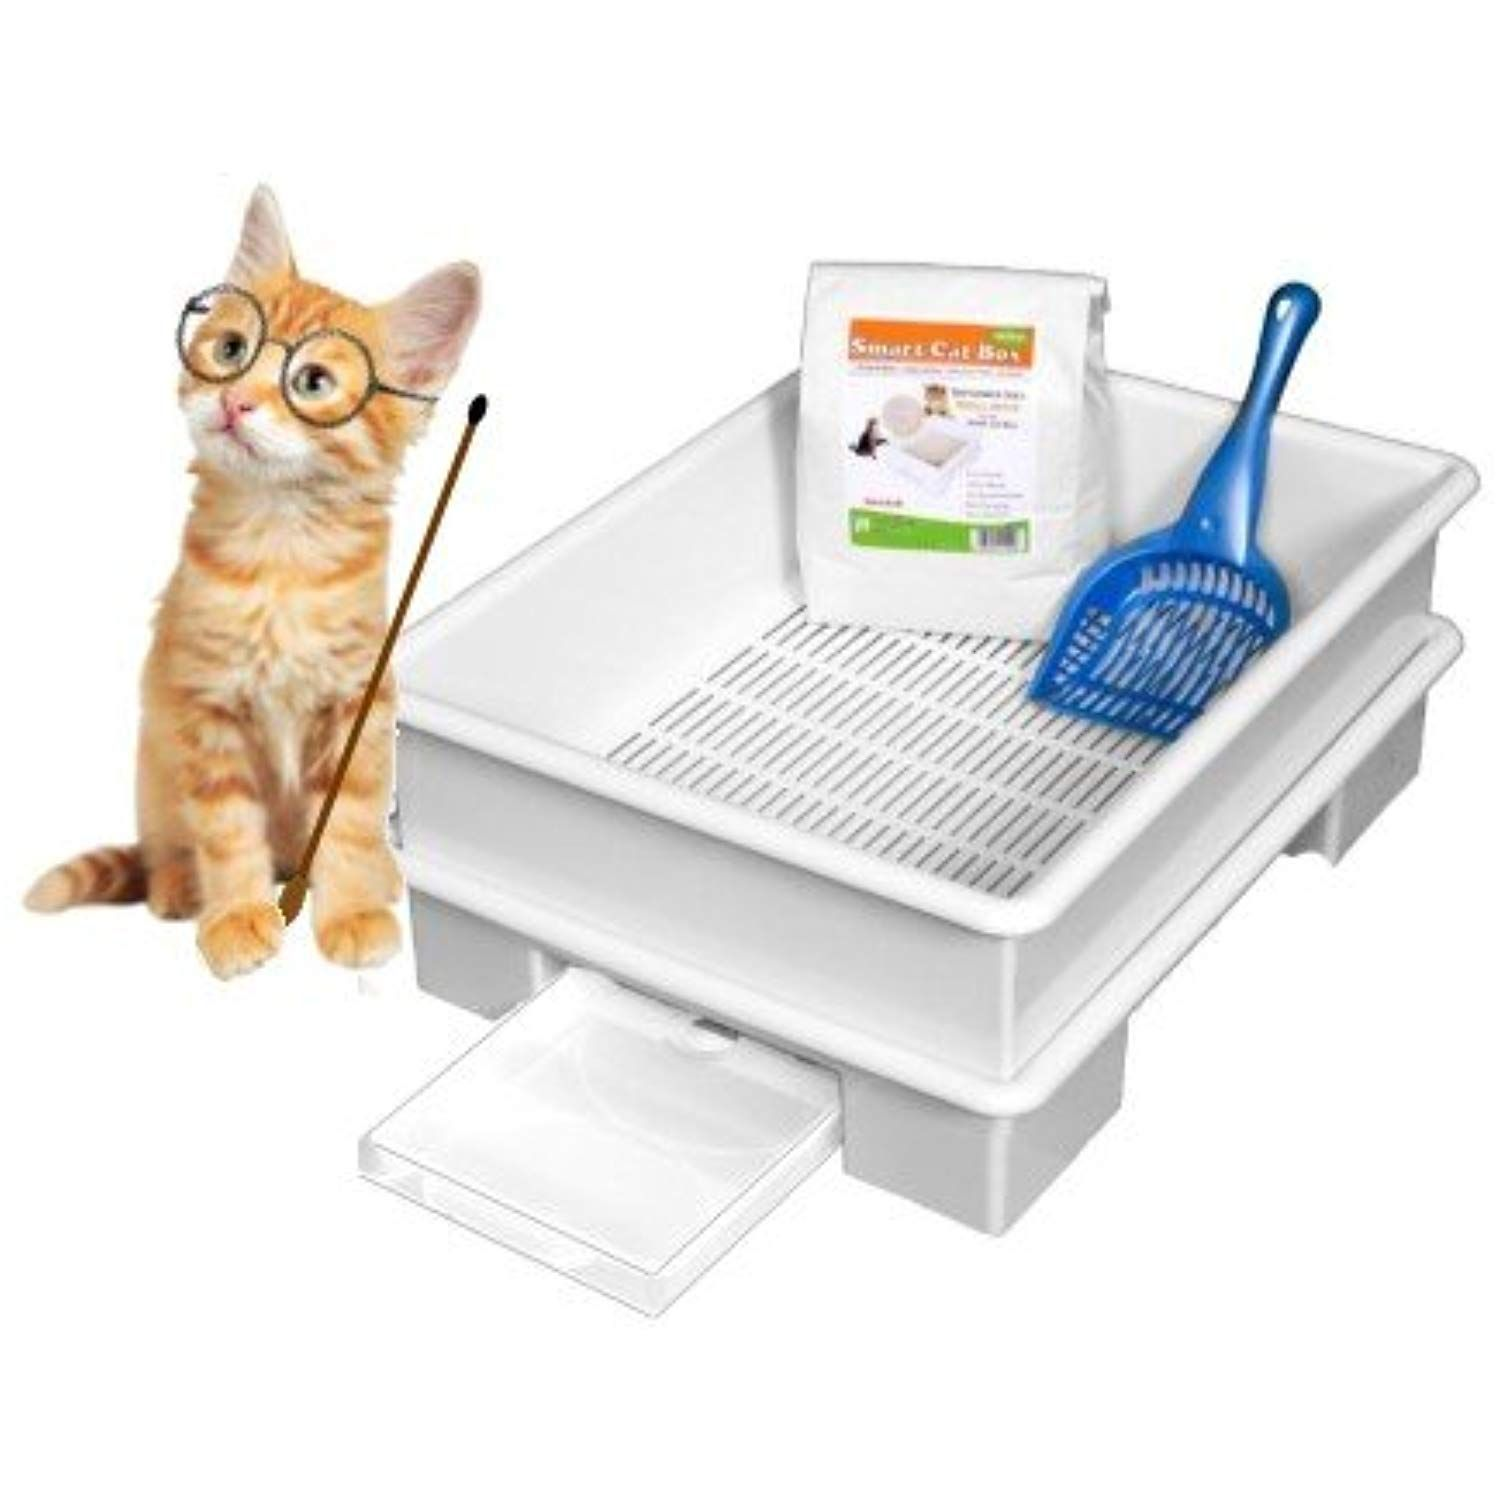 SMART CAT BOX Starter Kit Cat Litter Box DOES NOT USE